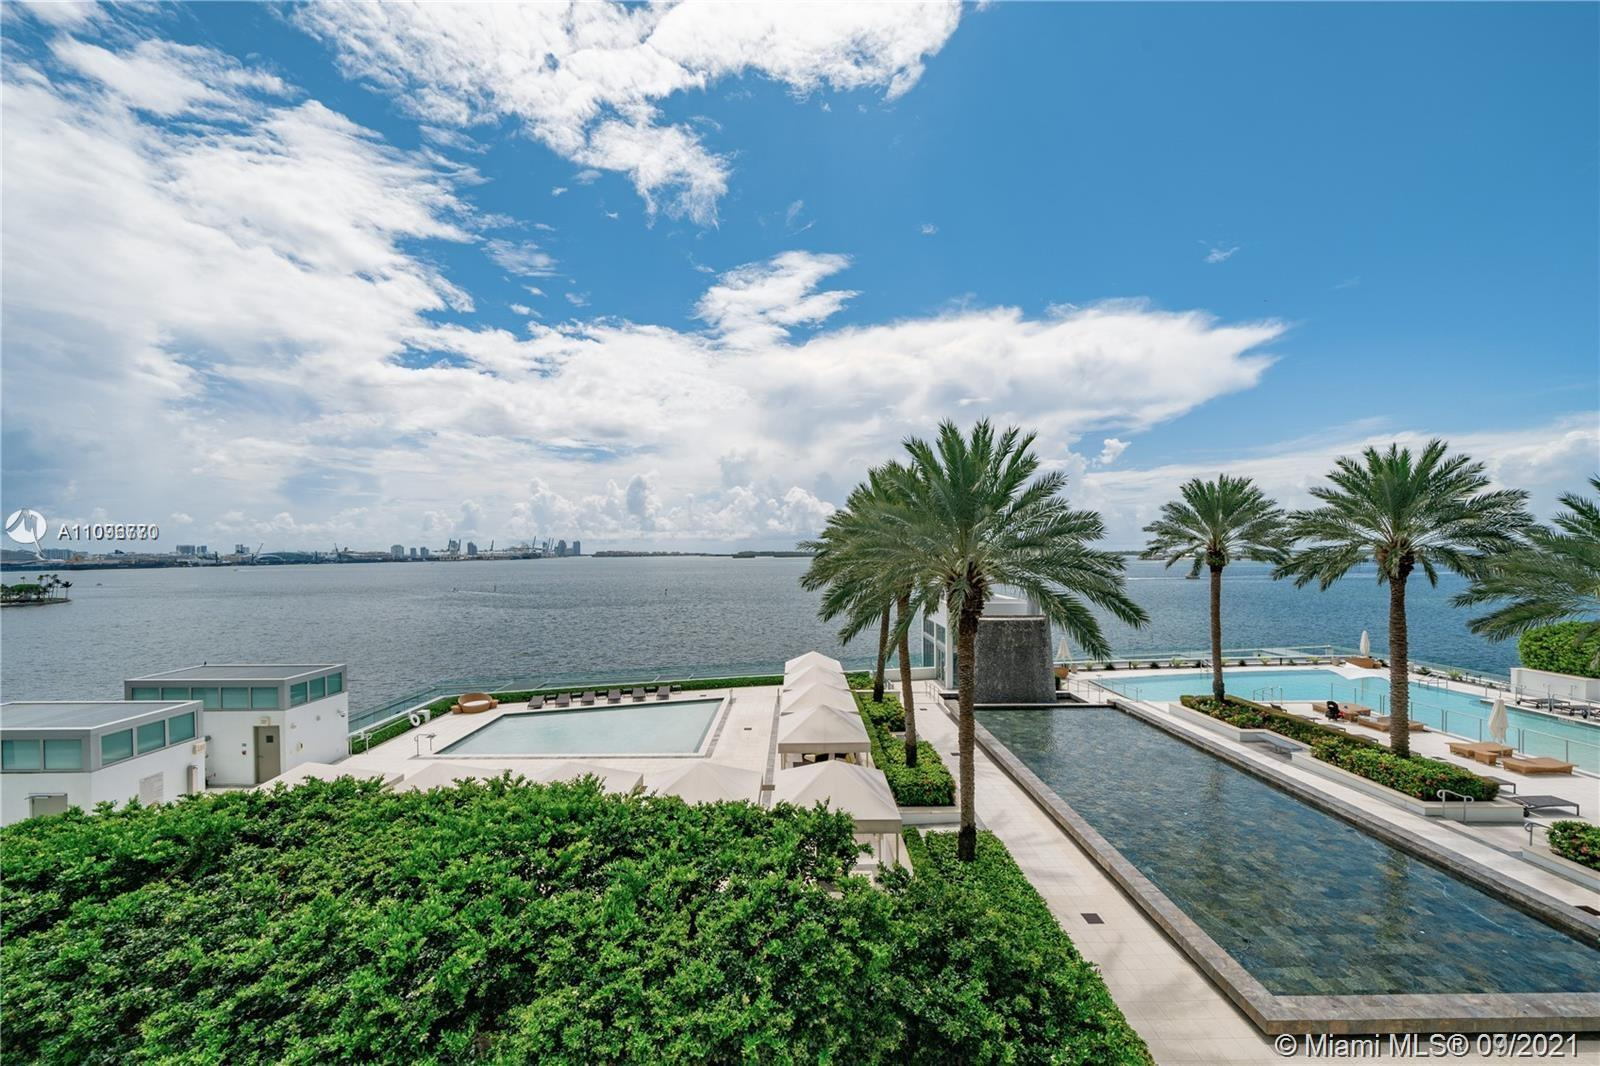 PREMIUM AND MOST DESIRABLE 2 BED/2 BATH SOUTH CORNER UNIT WITH DIRECT BAY AND BRICKELL SKYLINE VIEWS